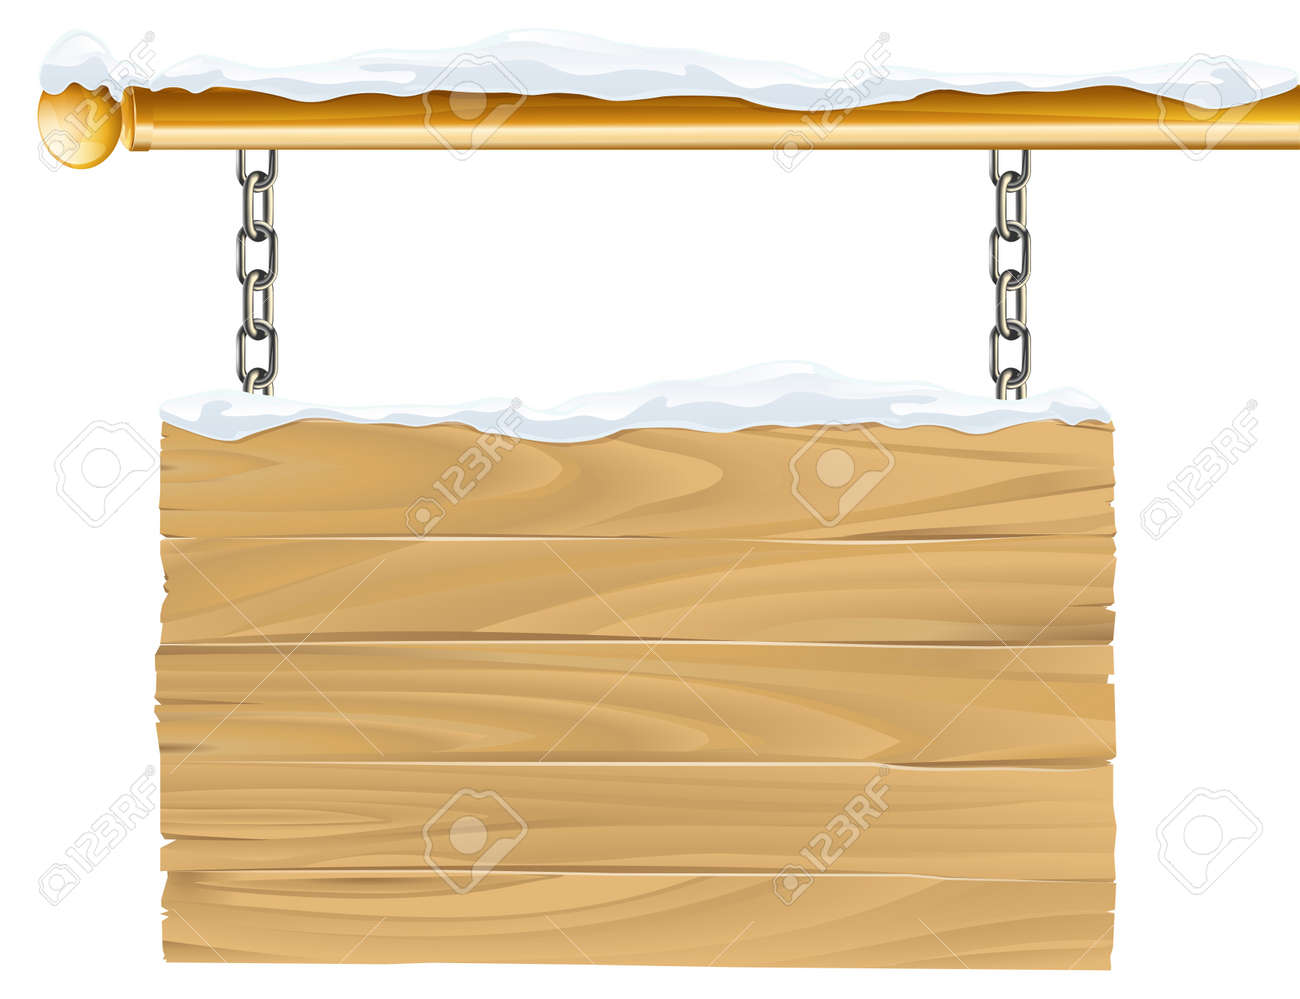 Christmas Chain Clipart.A Wooden Snowy Winter Christmas Sign Hanging Suspended From Chains